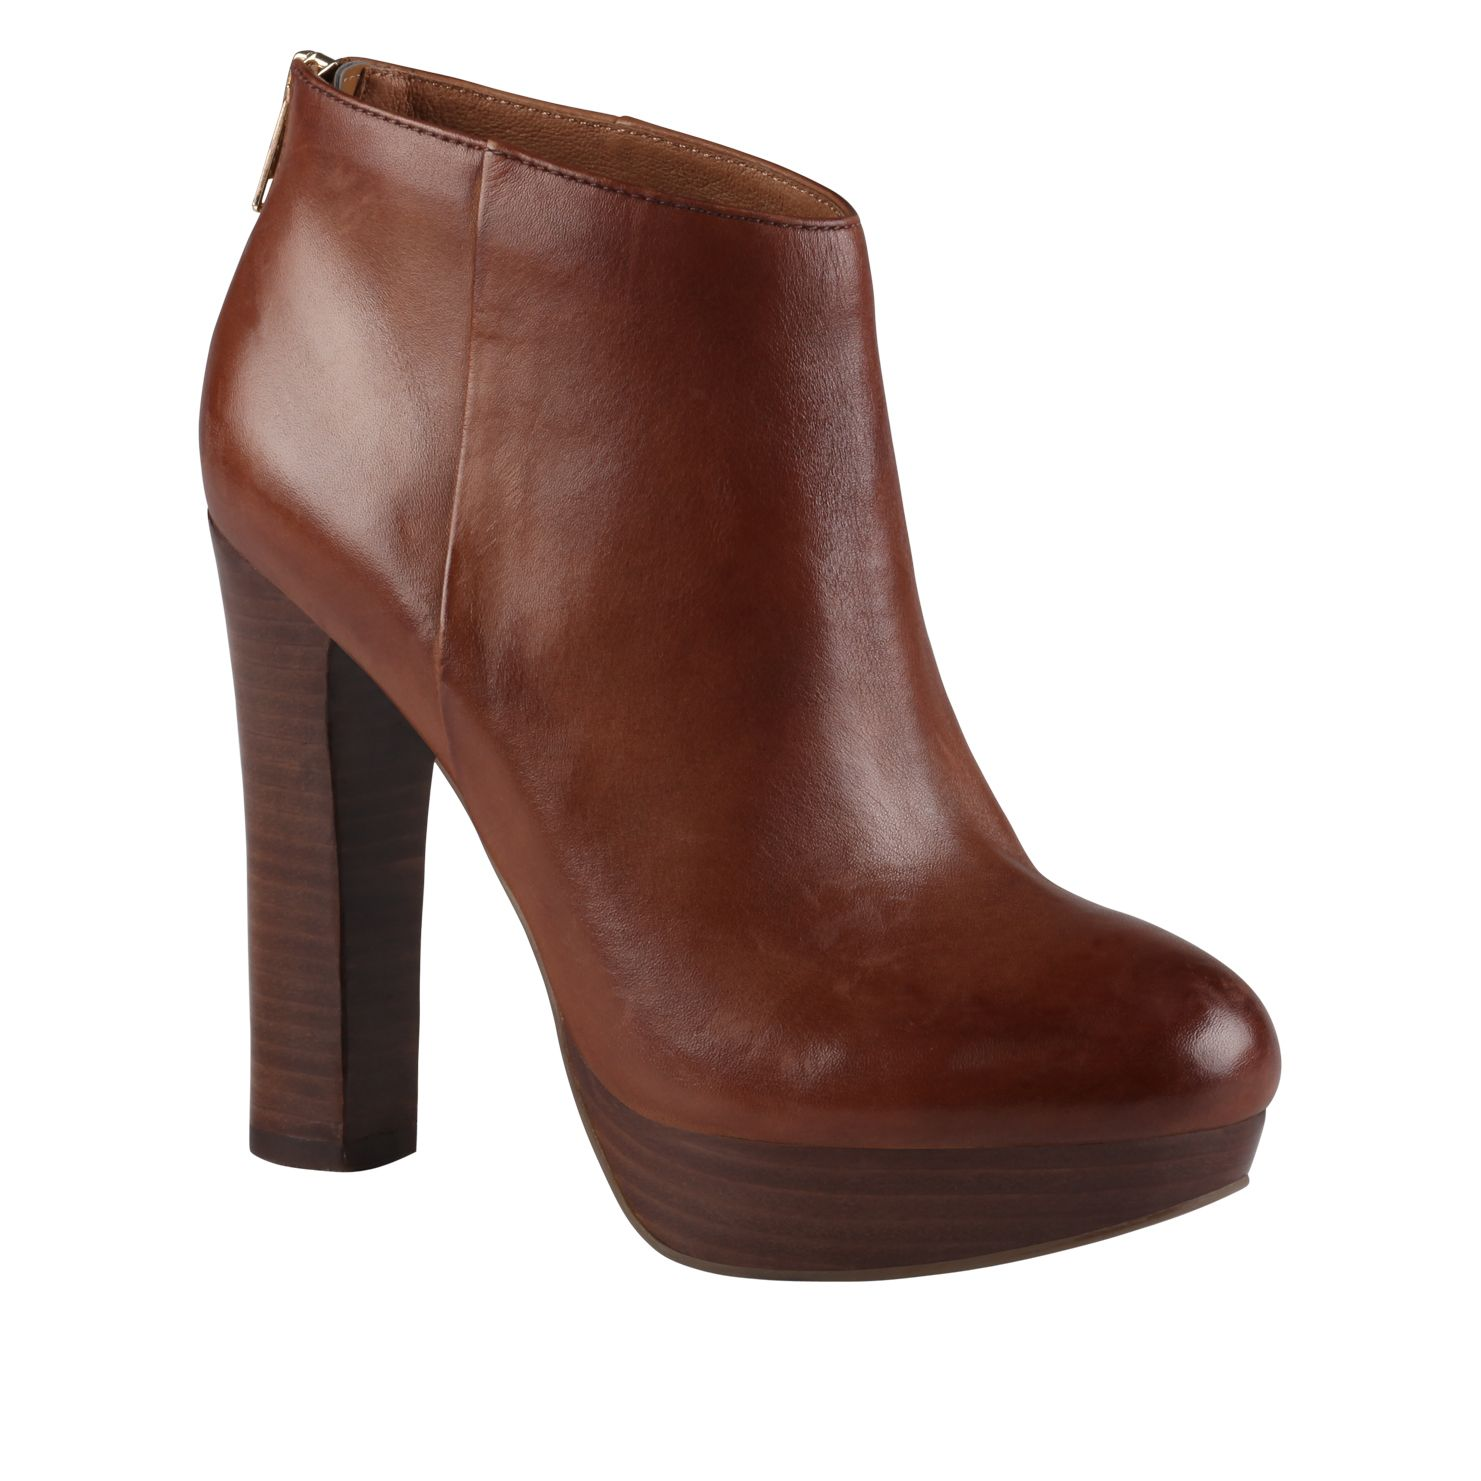 Maccallum Ankle Boot